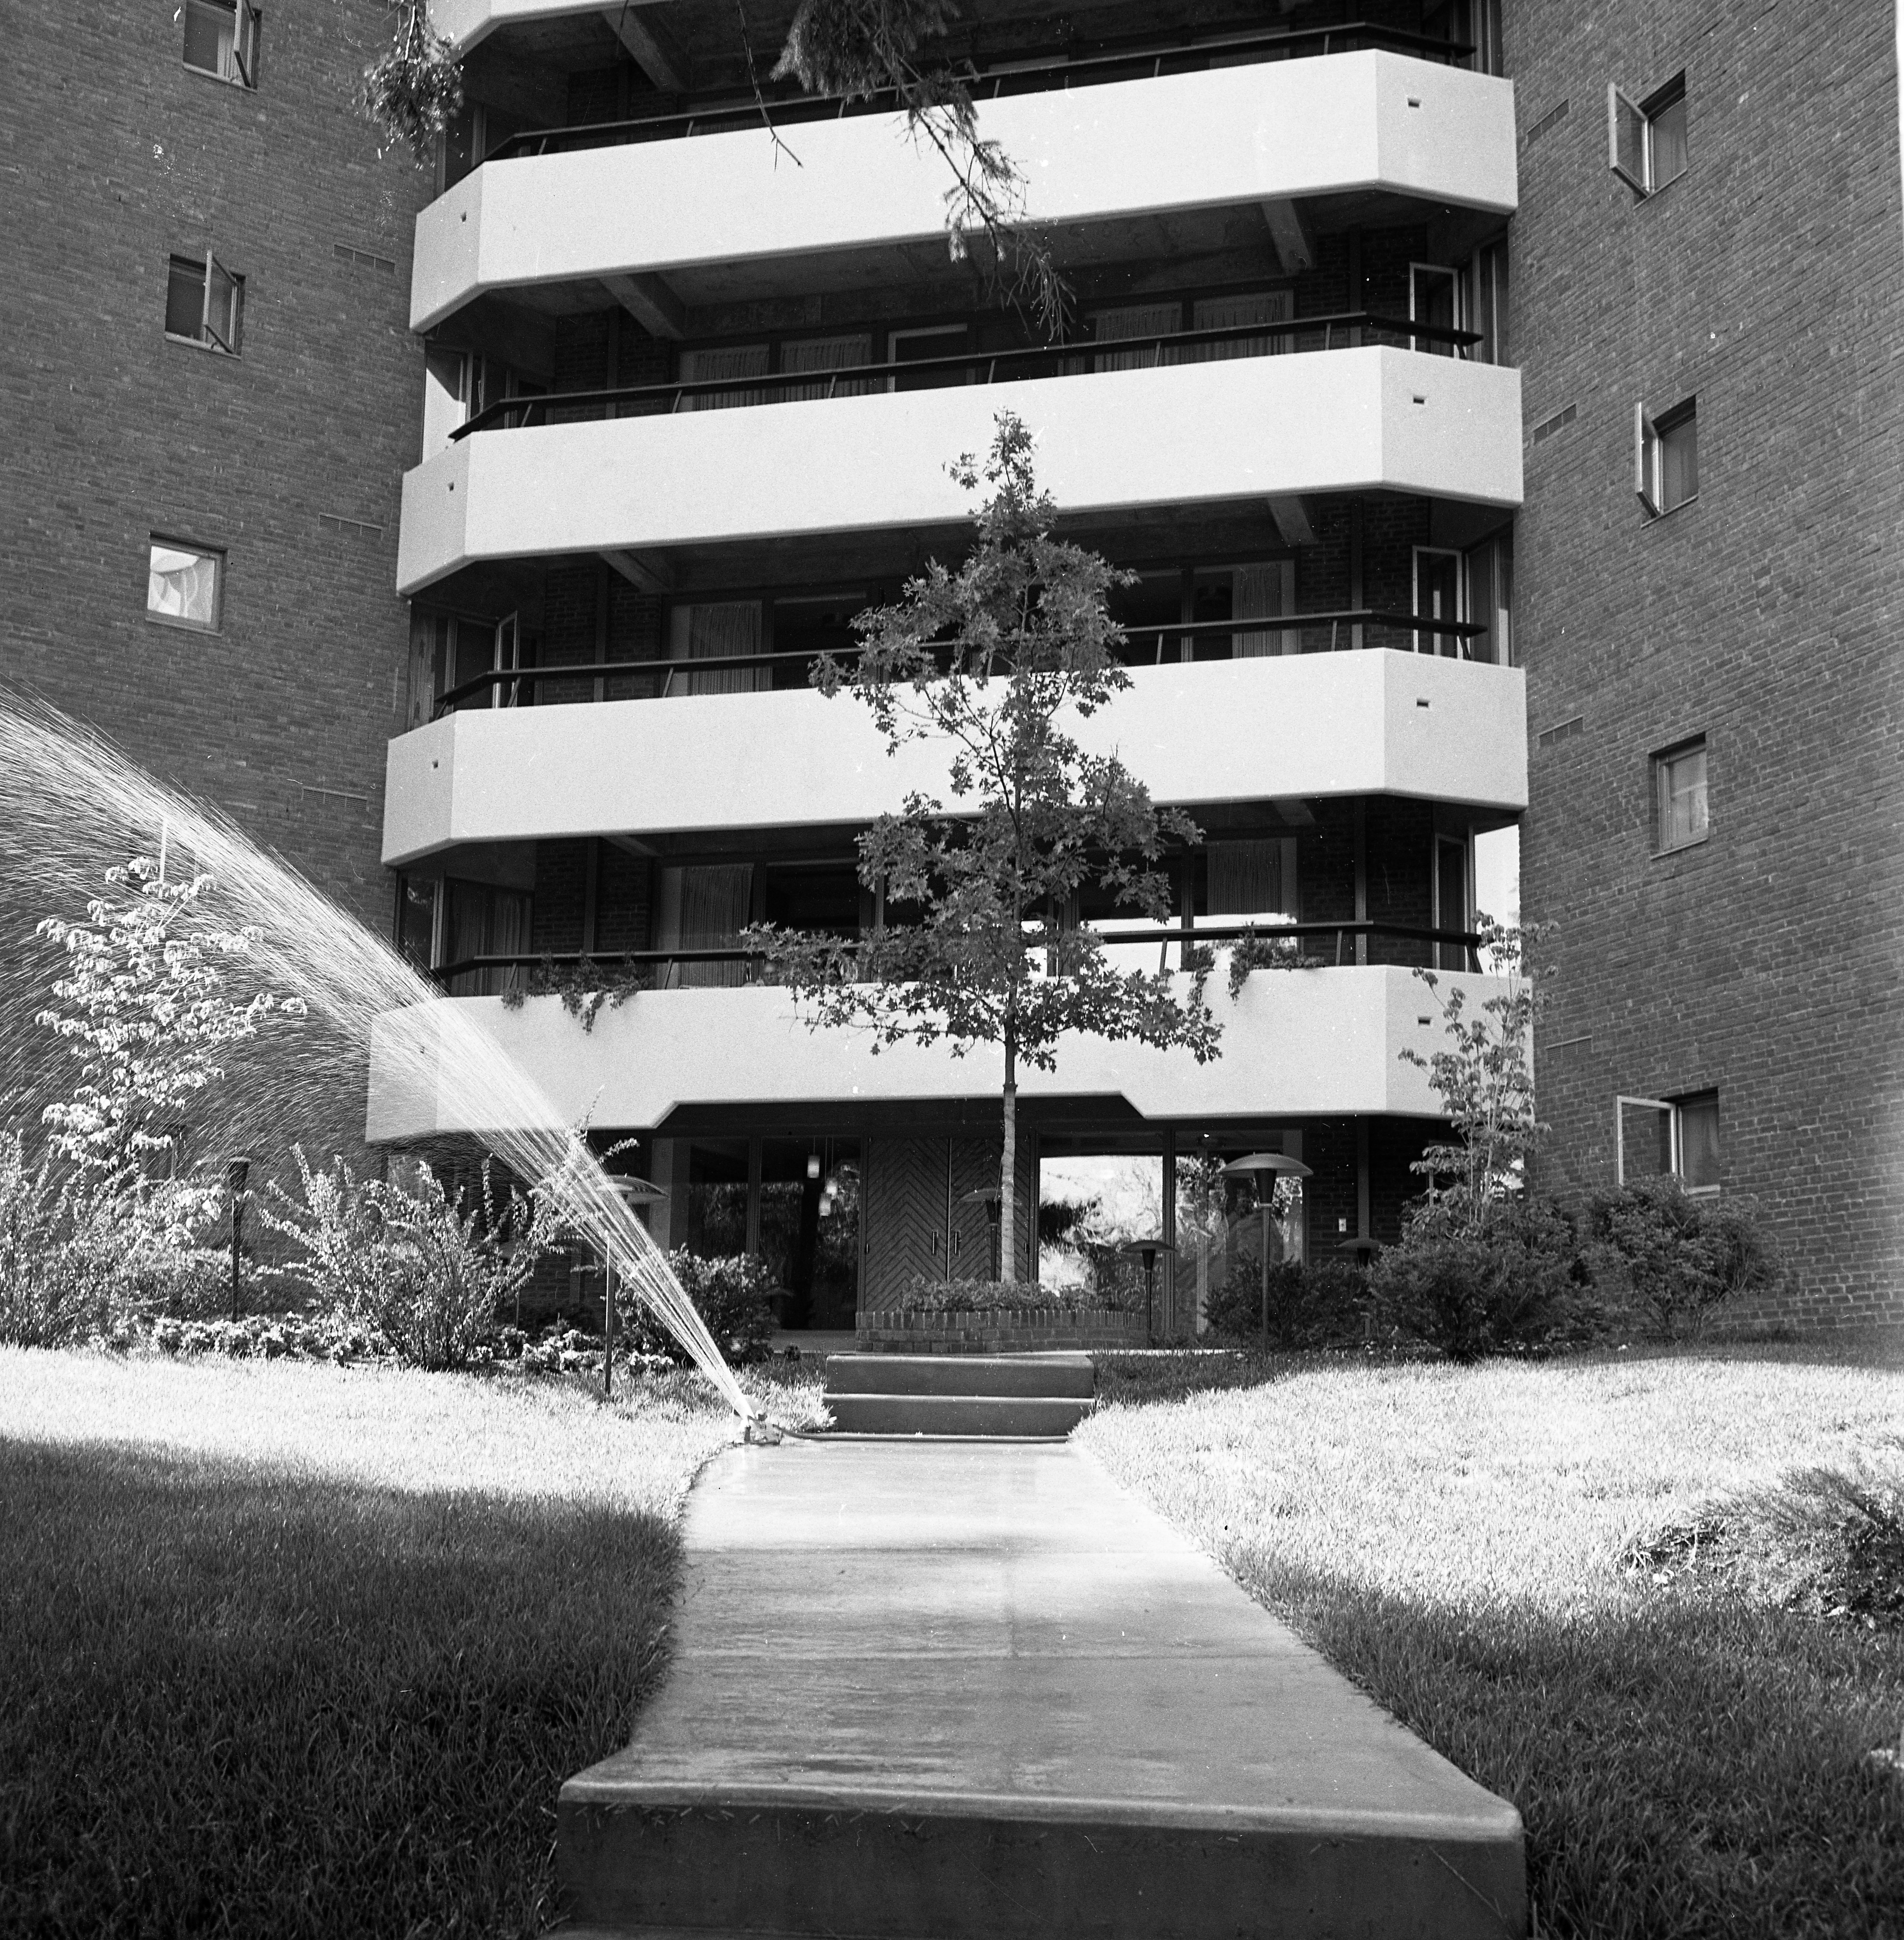 Entrance To Lurie Terrace, July 1965 image